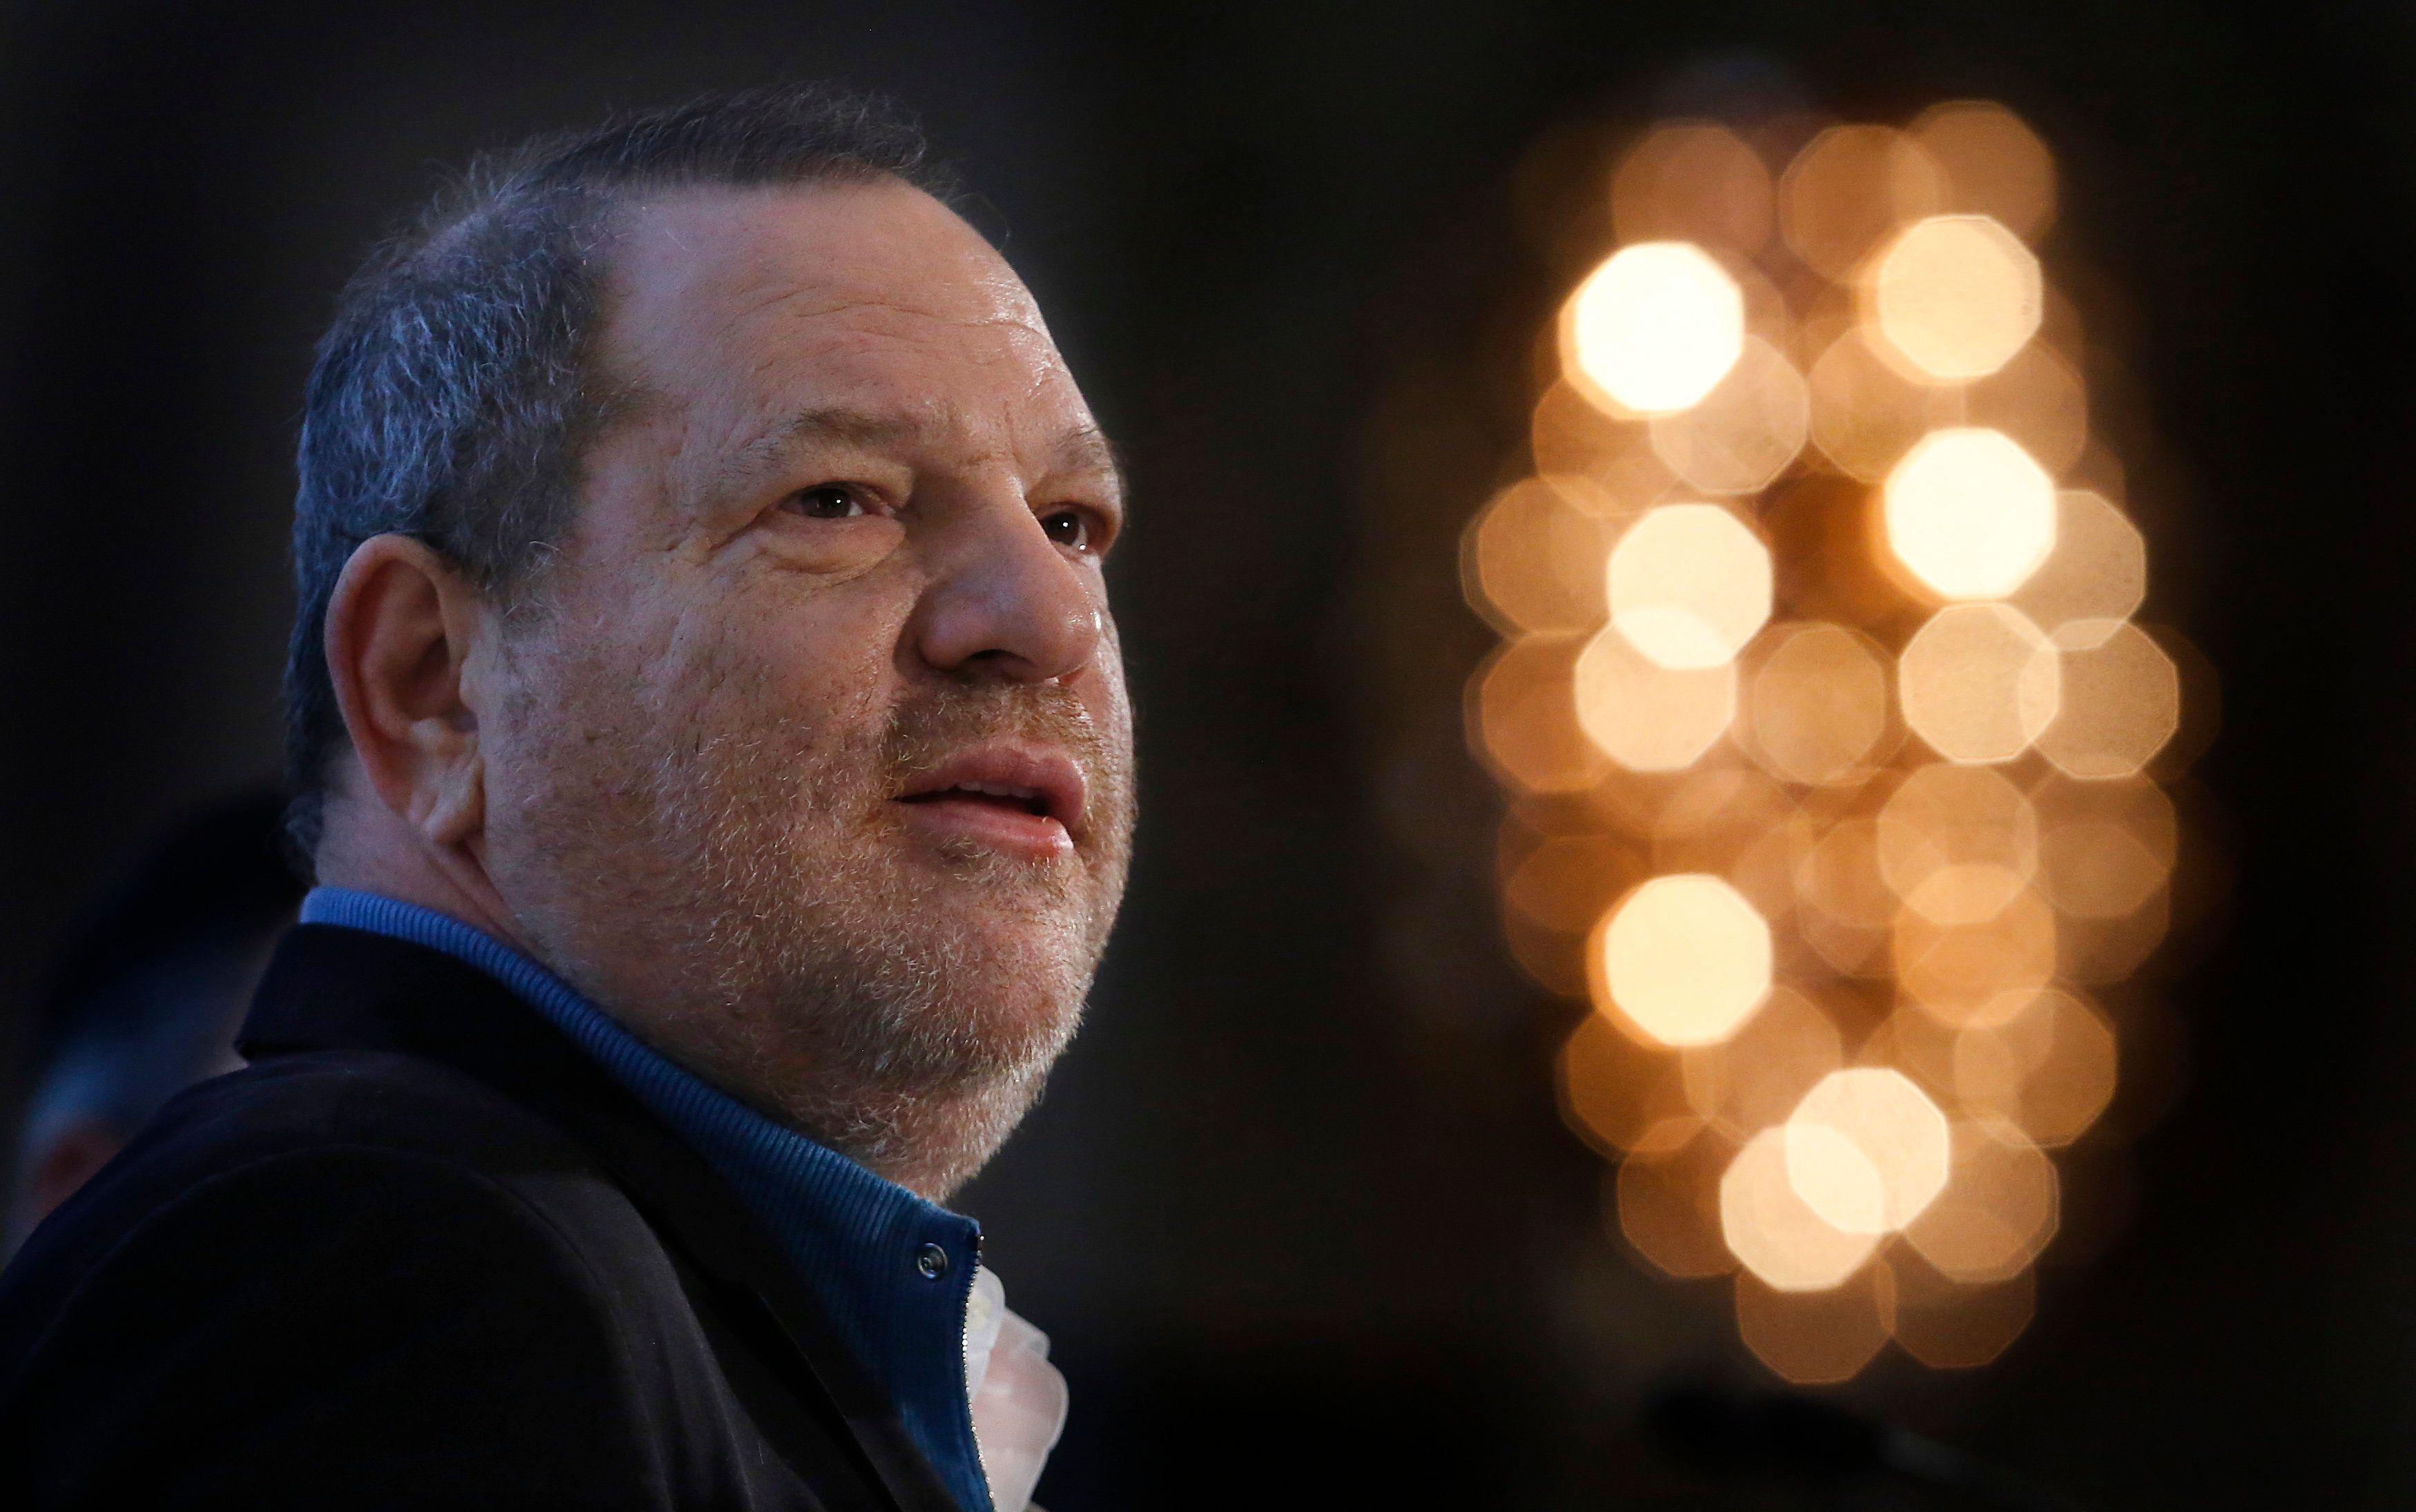 Harvey Weinstein, Co-Chairman of The Weinstein Company, speaks at the UBS 40th Annual Global Media and Communications Conference in New York, December 5, 2012. REUTERS/Carlo Allegri  (UNITED STATES - Tags: BUSINESS HEADSHOT ENTERTAINMENT)